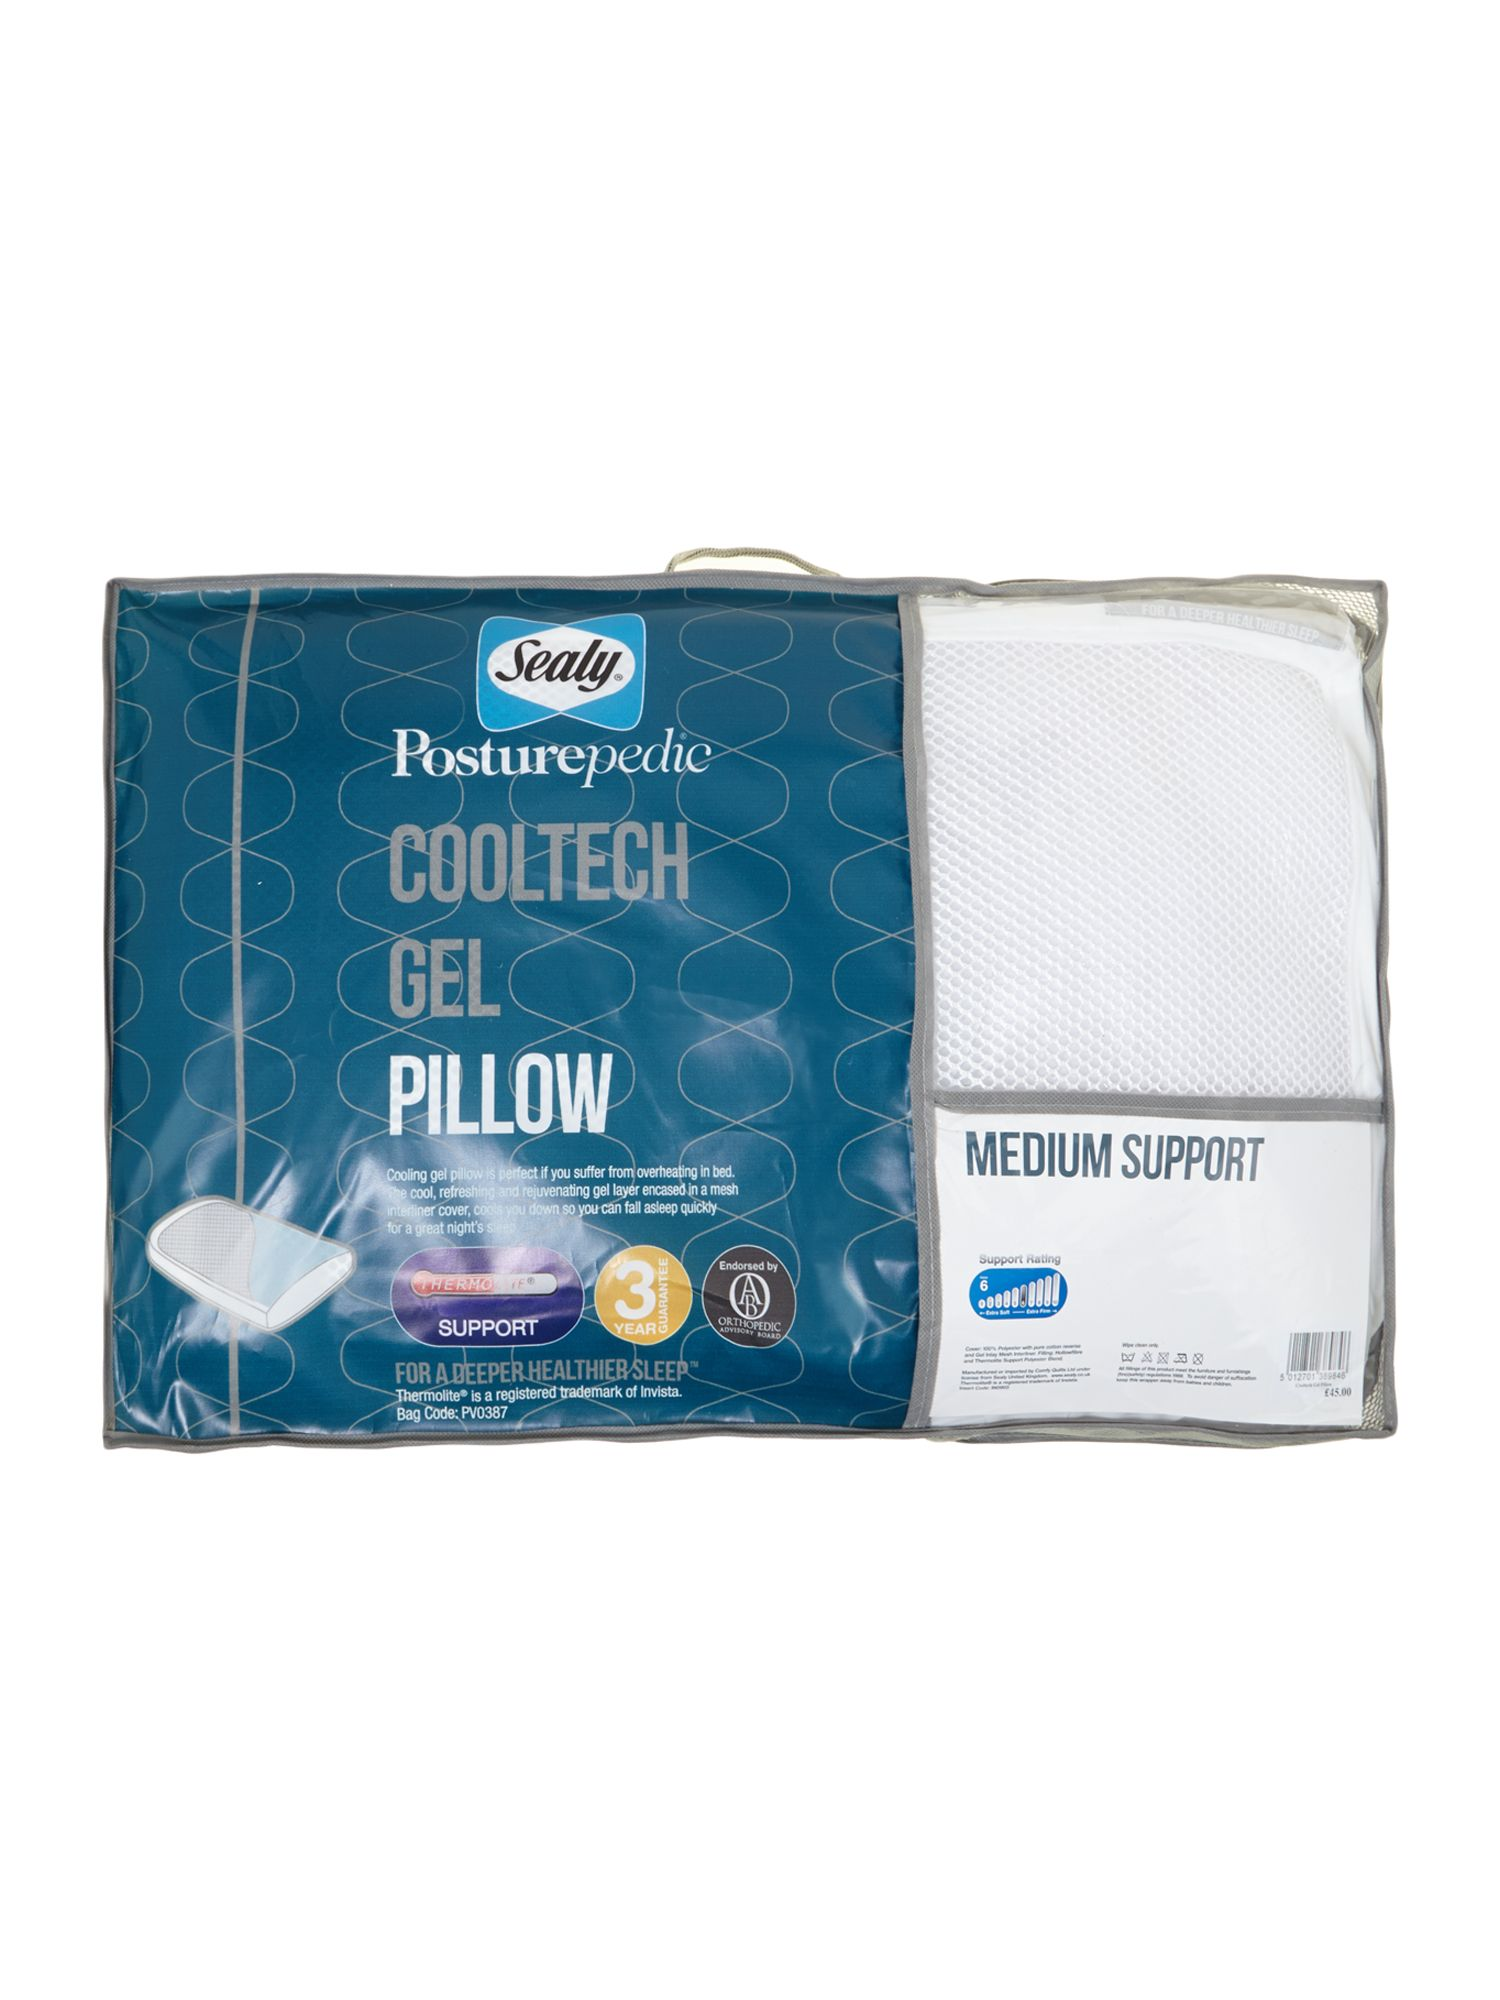 50 Off Sealy Posturepedic Cooltech Gel Pillow All These